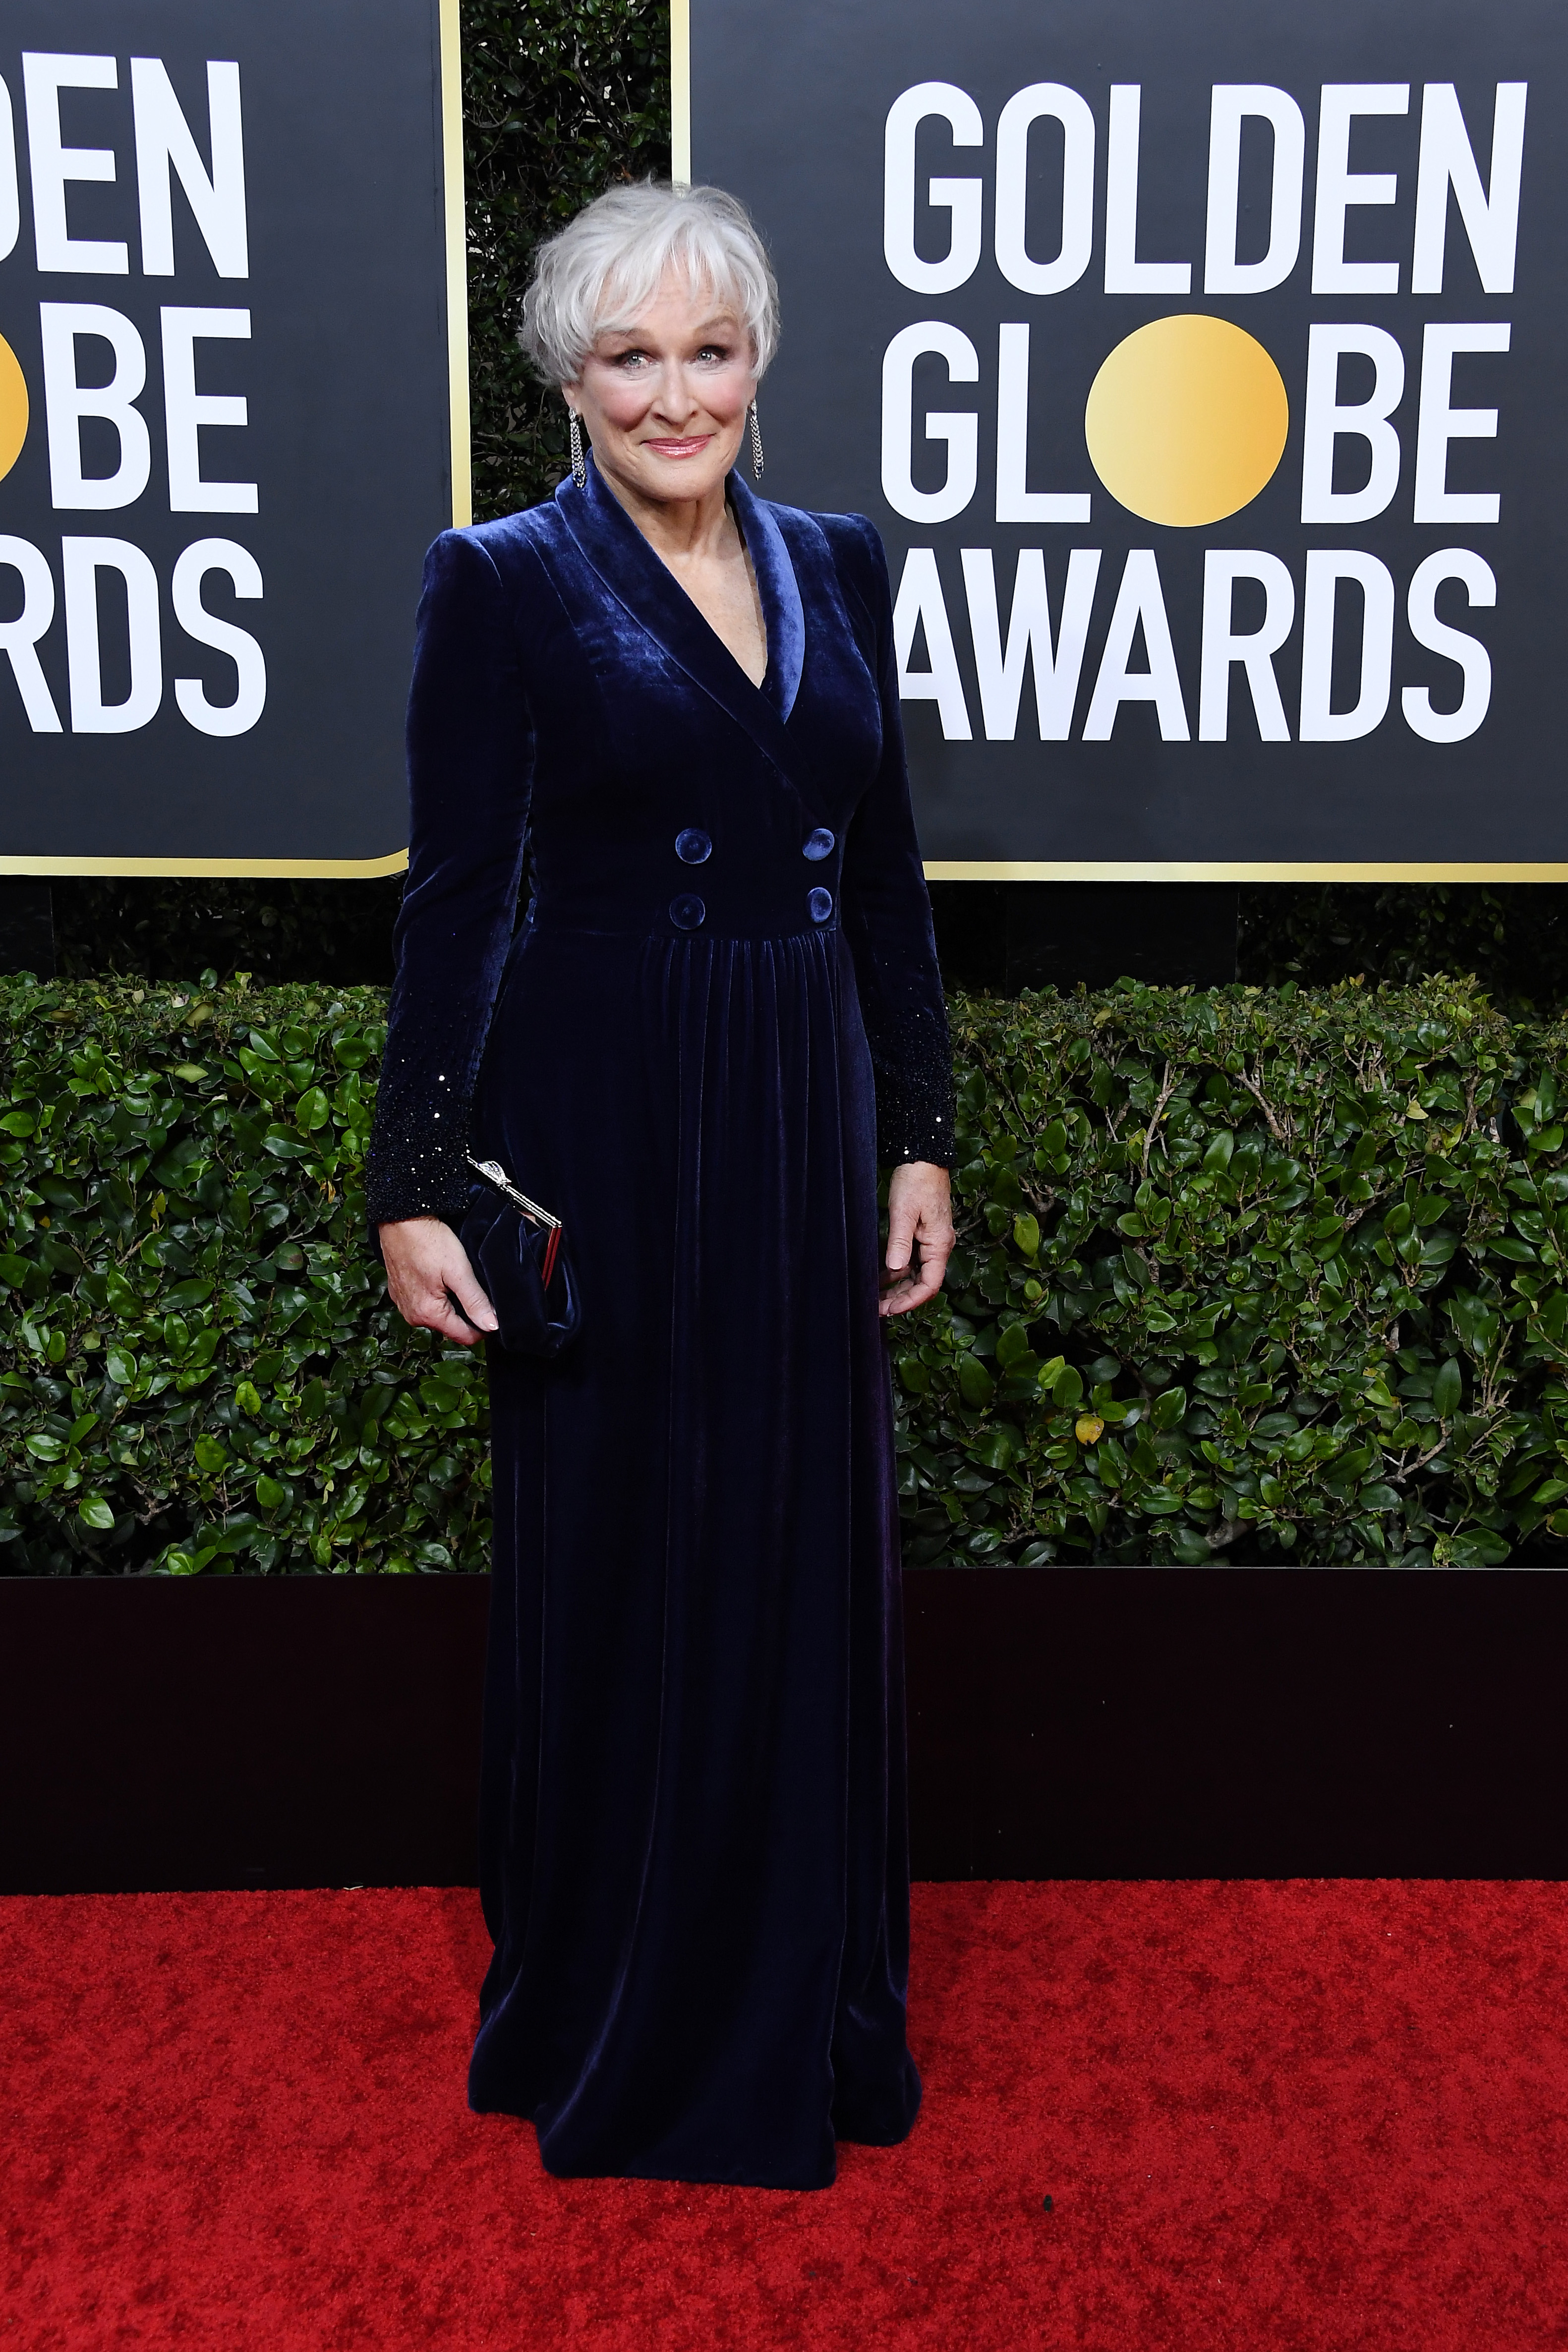 BEVERLY HILLS, CALIFORNIA - JANUARY 05: Glenn Close attends the 77th Annual Golden Globe Awards at The Beverly Hilton Hotel on January 05, 2020 in Beverly Hills, California. (Photo by Steve Granitz/WireImage)